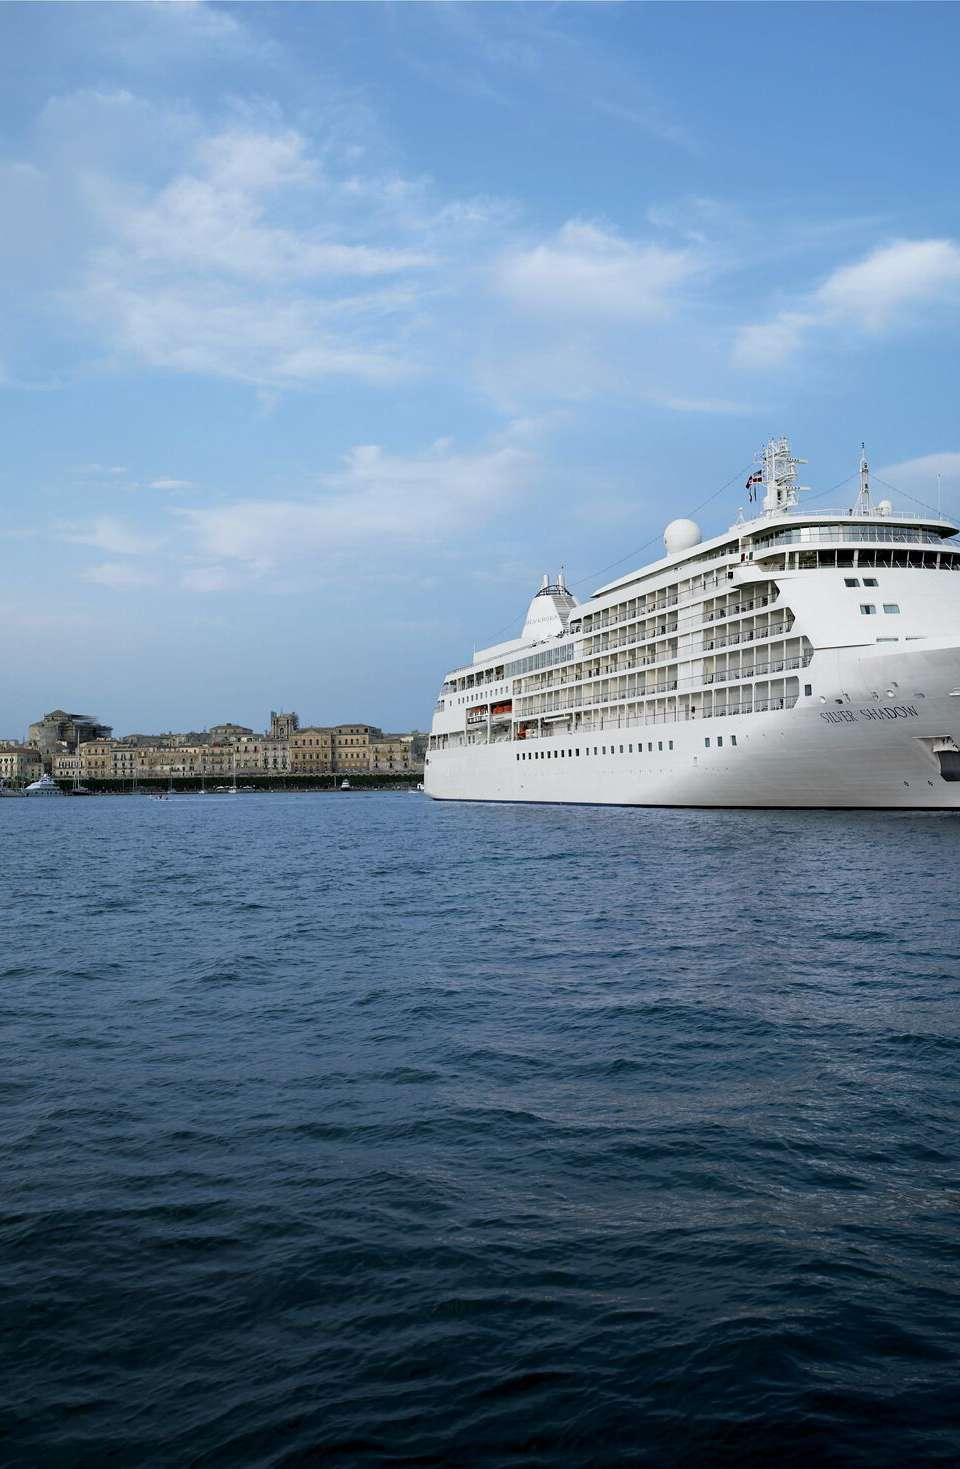 The Silver Shadow cruise line